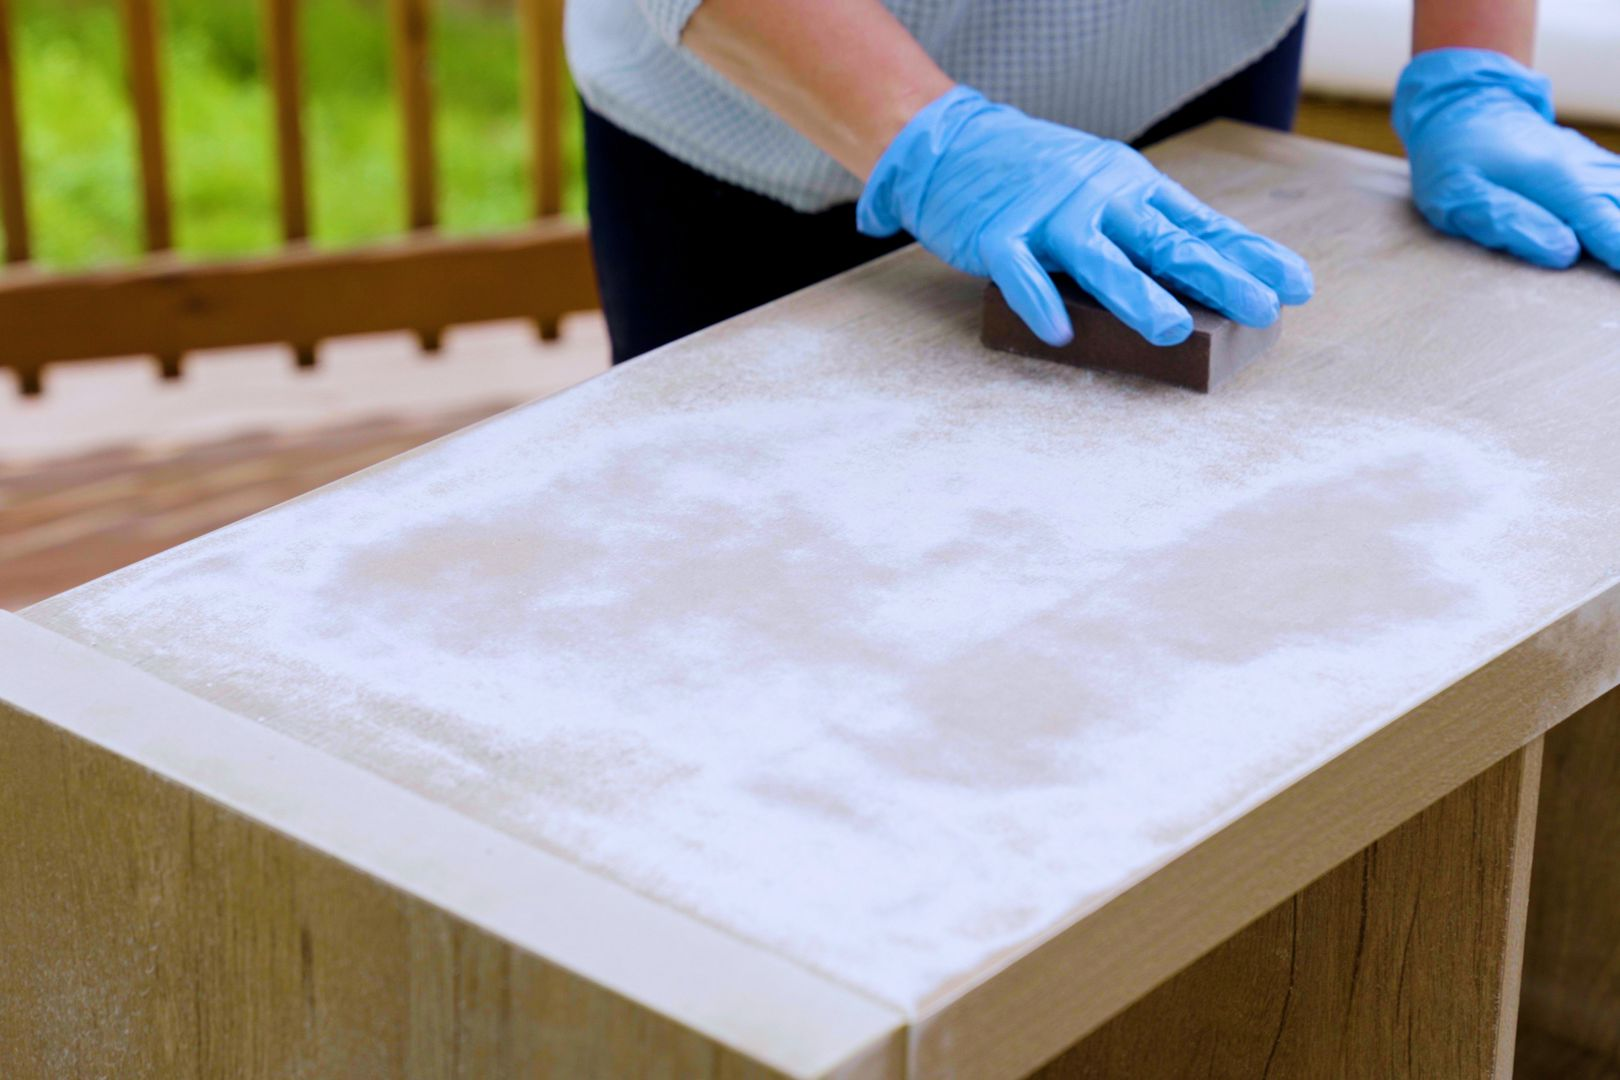 Particleboard furniture sanded down by hand with blue gloves for refurbishing